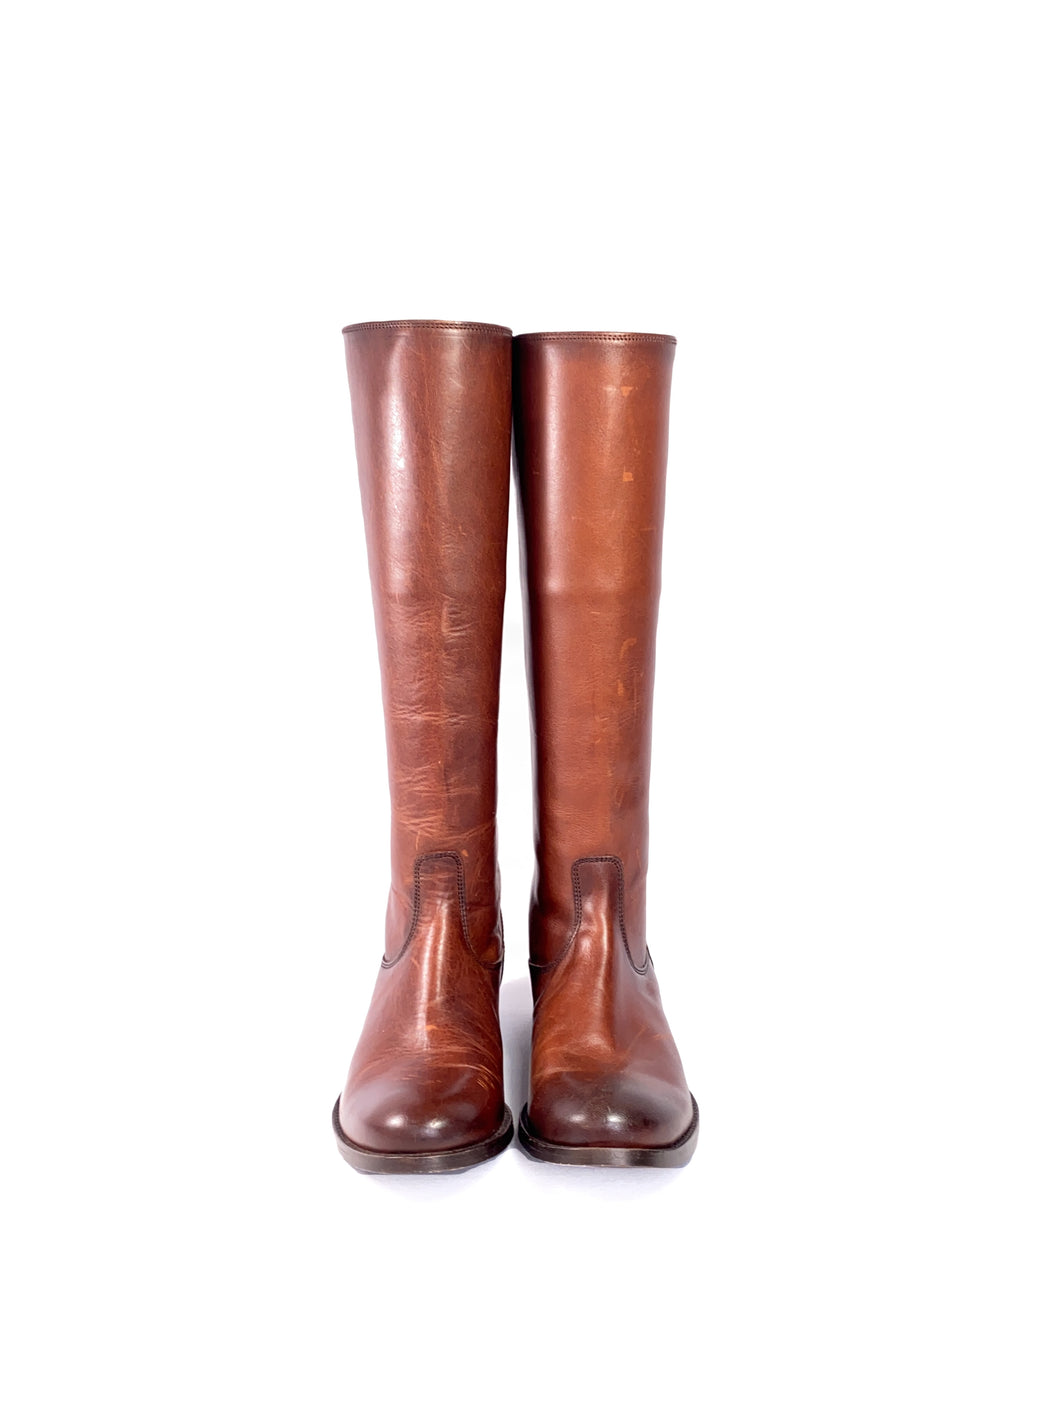 Frye brown leather tall boots size 6.5